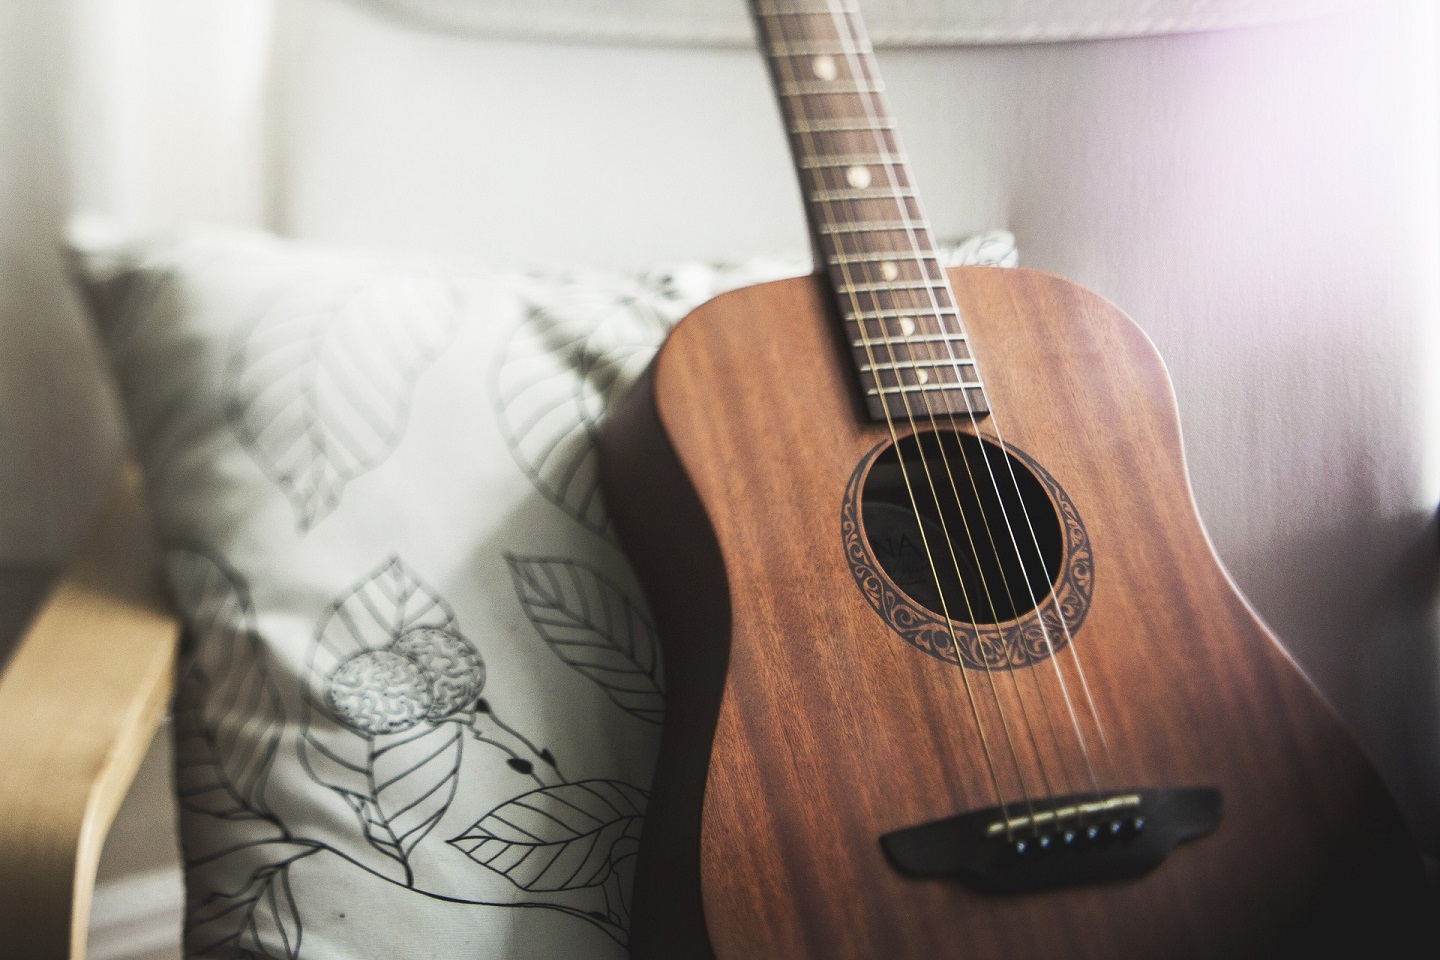 short breaks playing guitar increases home office productivity